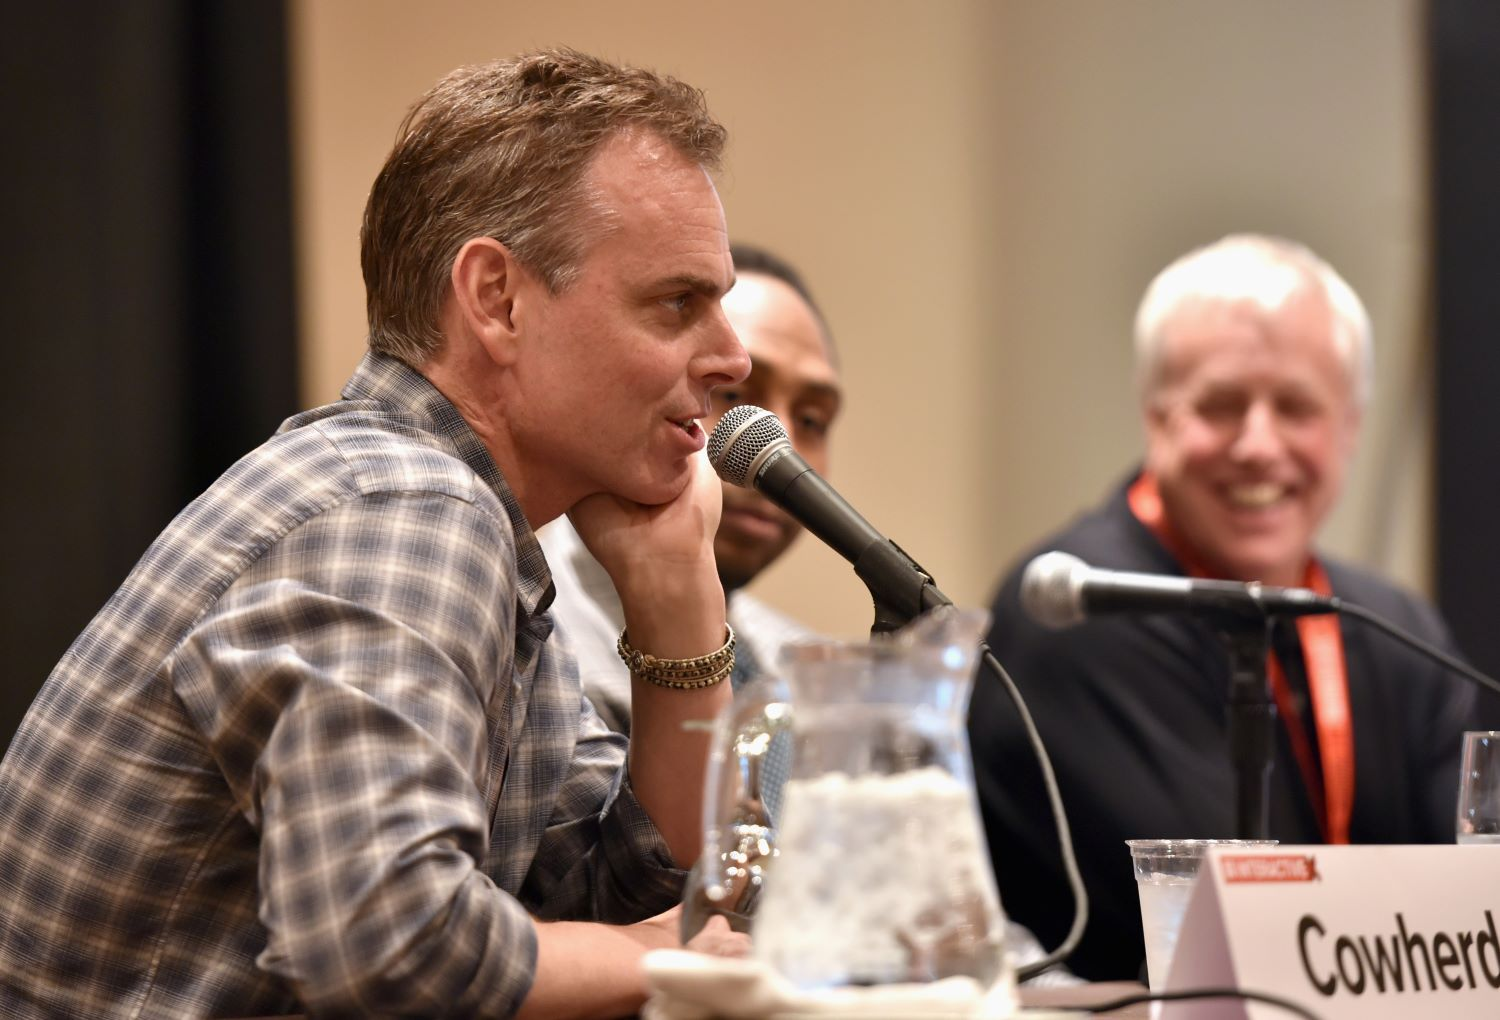 Colin Cowherd dropped a major clue about his next career move on Friday on Twitter.